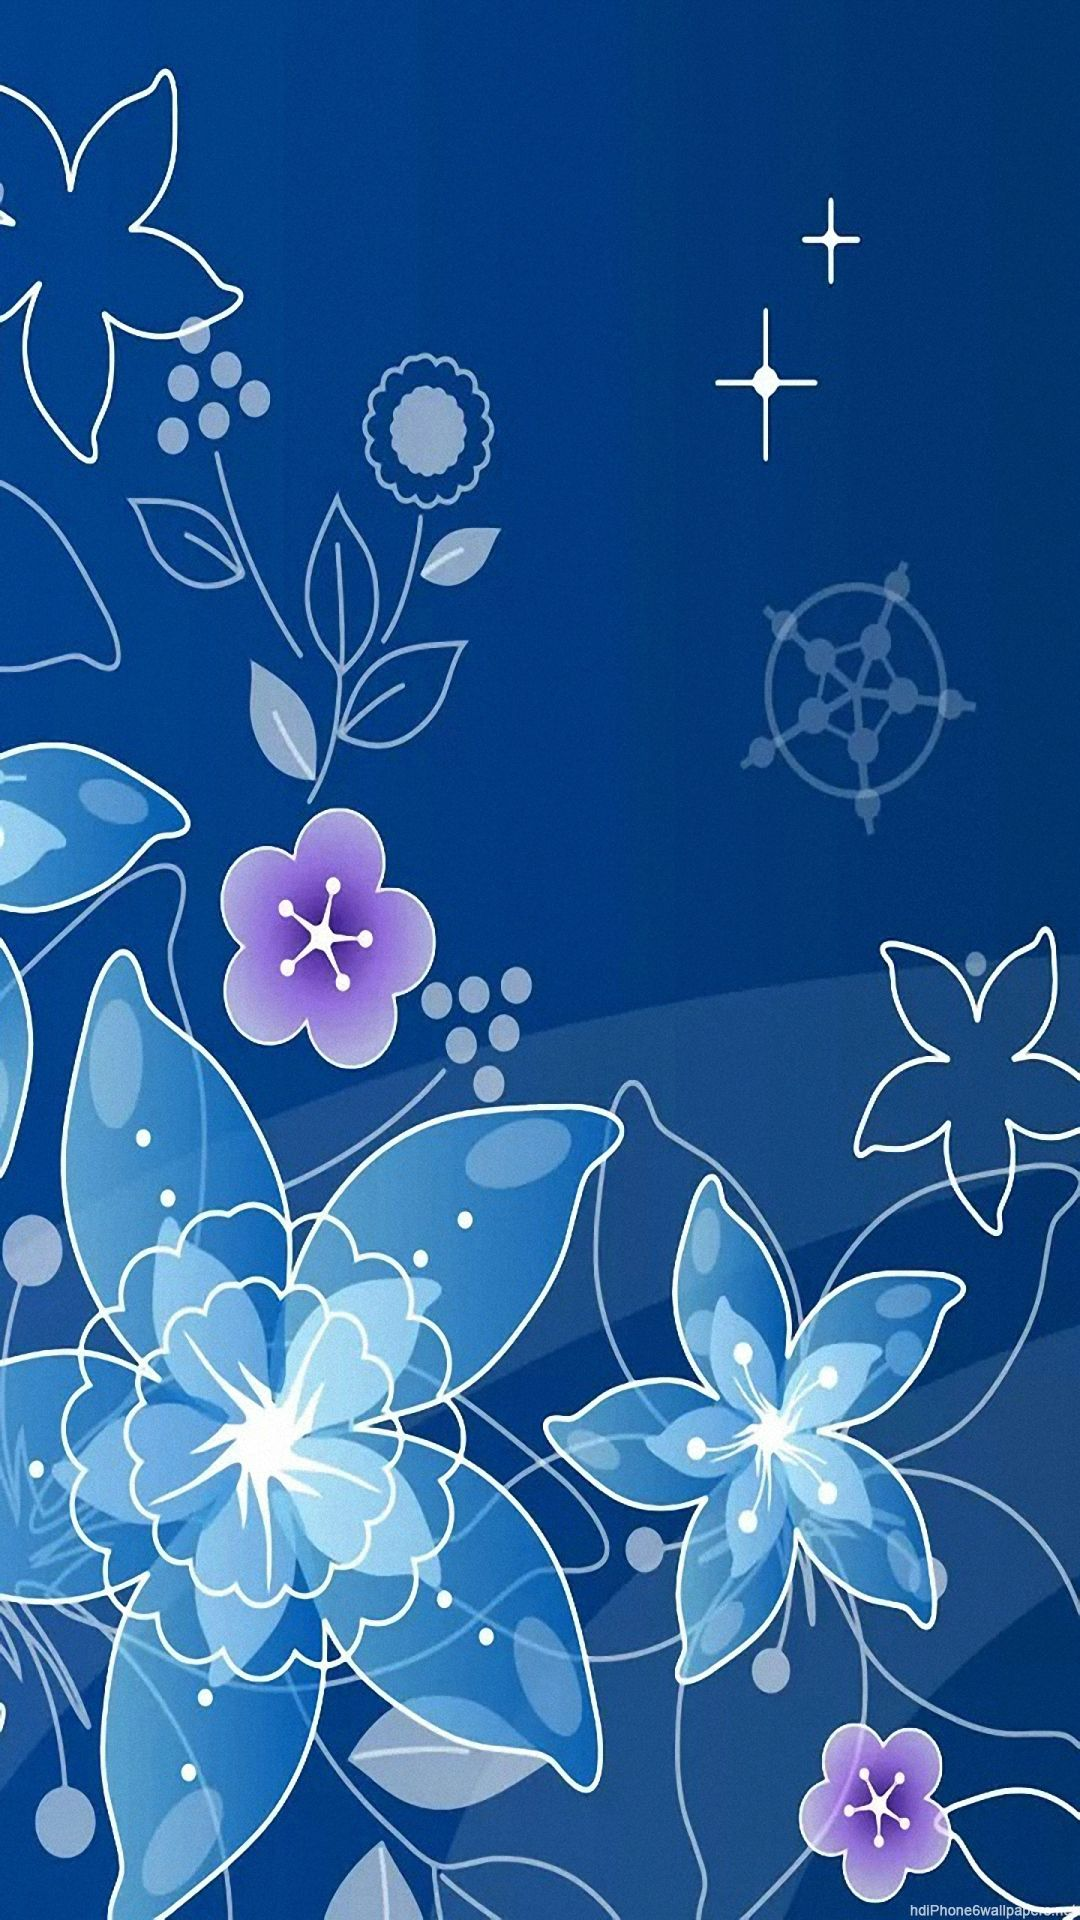 Vector Blue Flowers Image Downloads Backgrounds Wallpapers